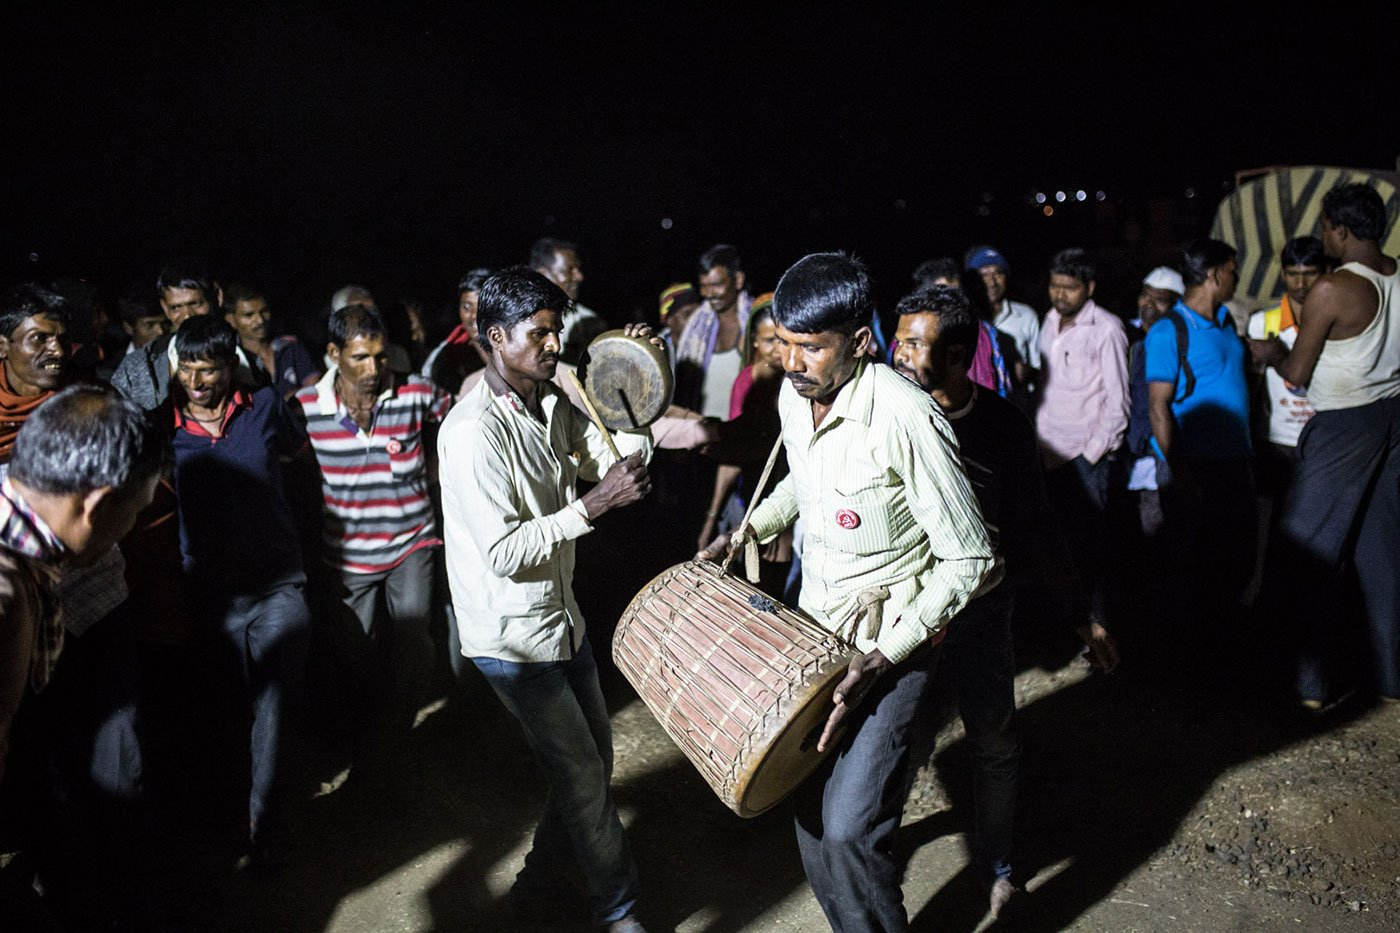 After a long day of walking, some farmers sing and dance at night.